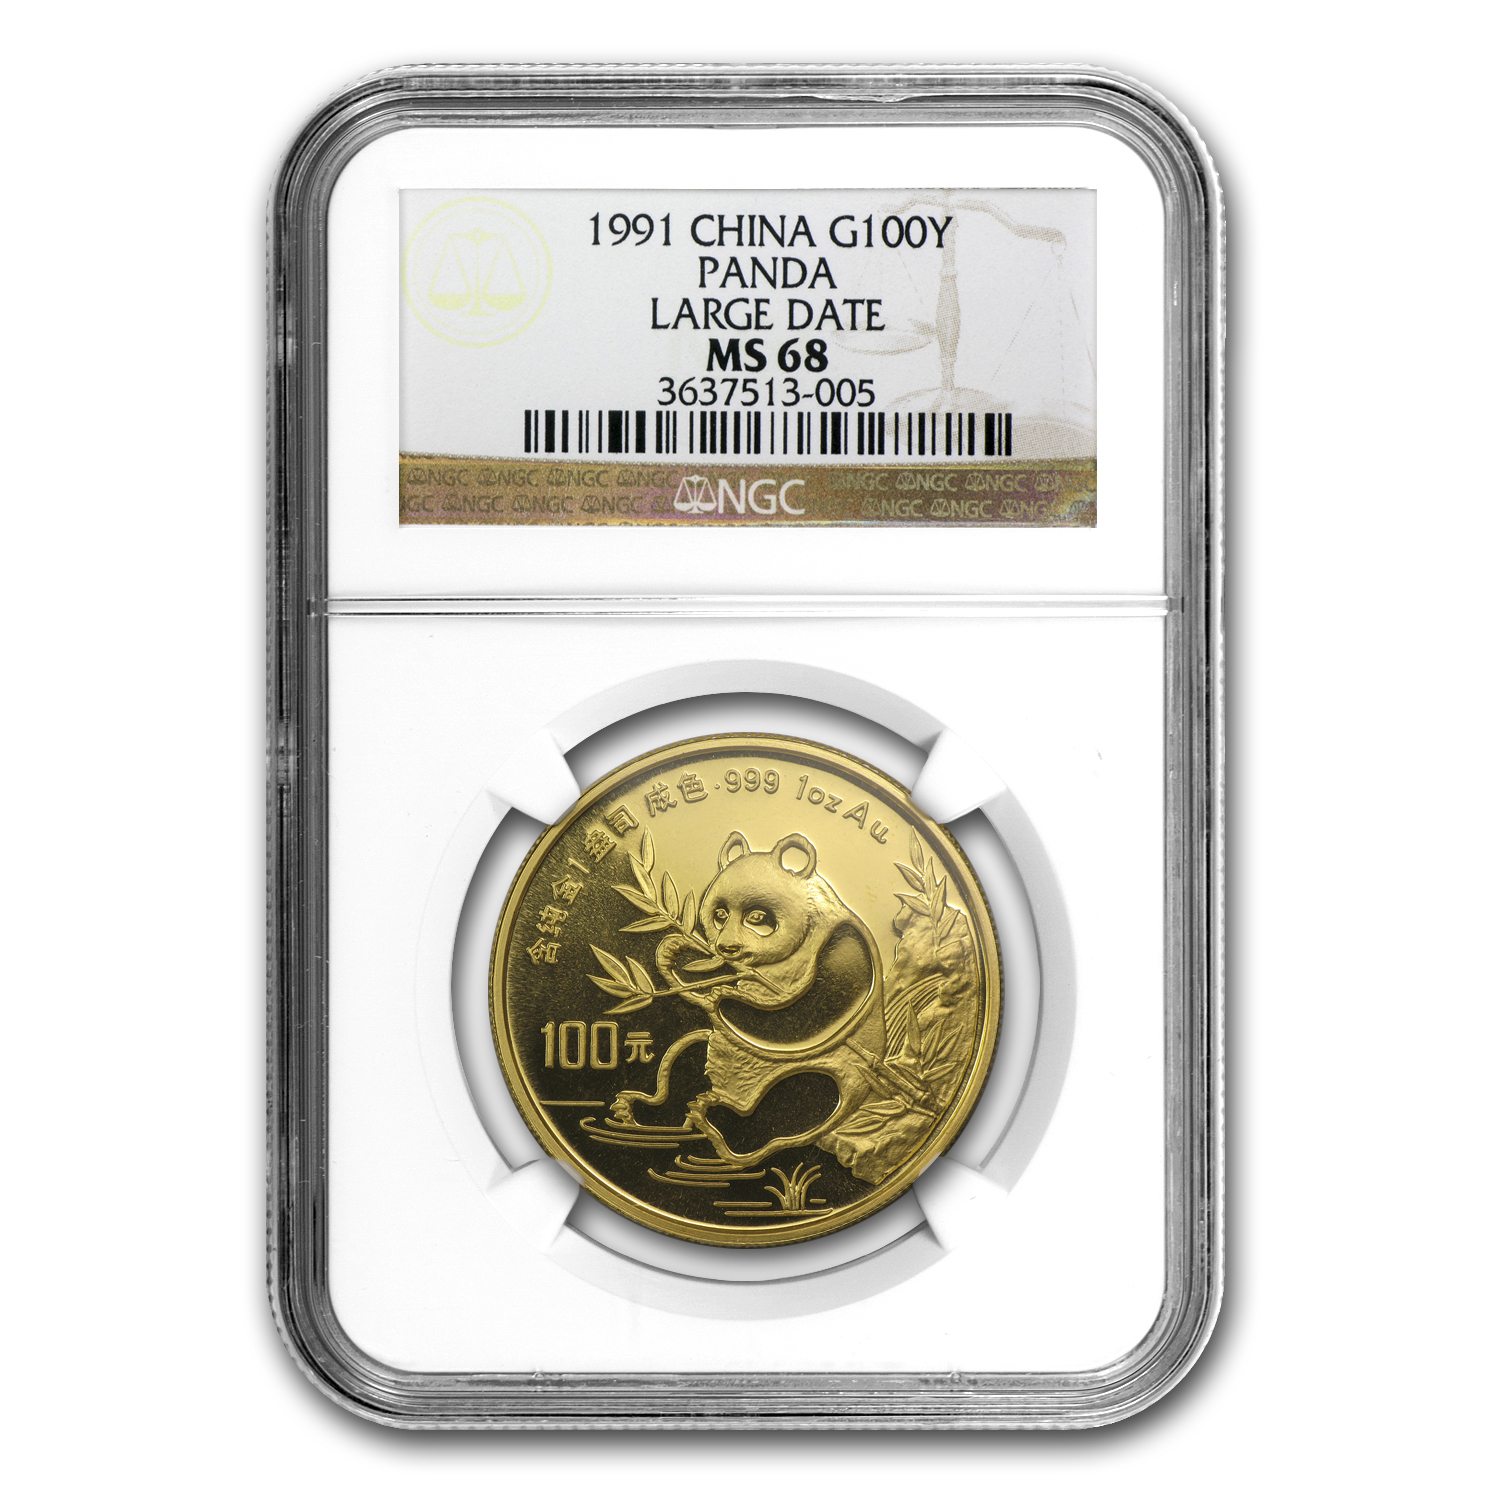 1991 China 1 oz Gold Panda Large Date MS-68 NGC